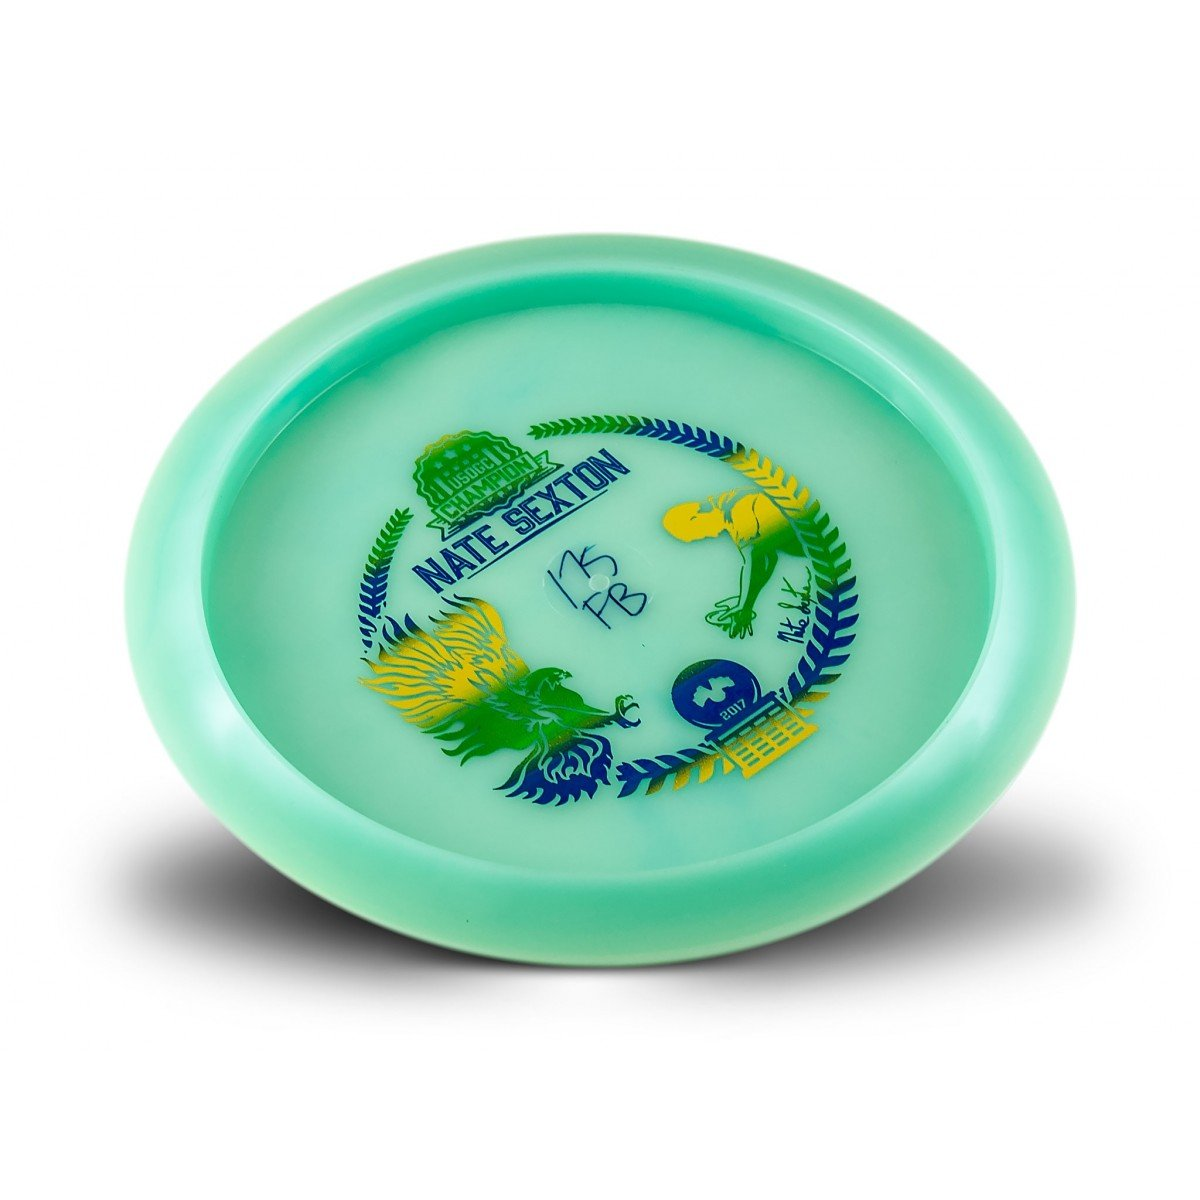 Innova Limited Edition Champion Glow Firebird Nate Sexton 2017 Commemorative Overstable Disc Golf Distance Driver (Color may vary) (Green/Blue/Yellow) by Innova